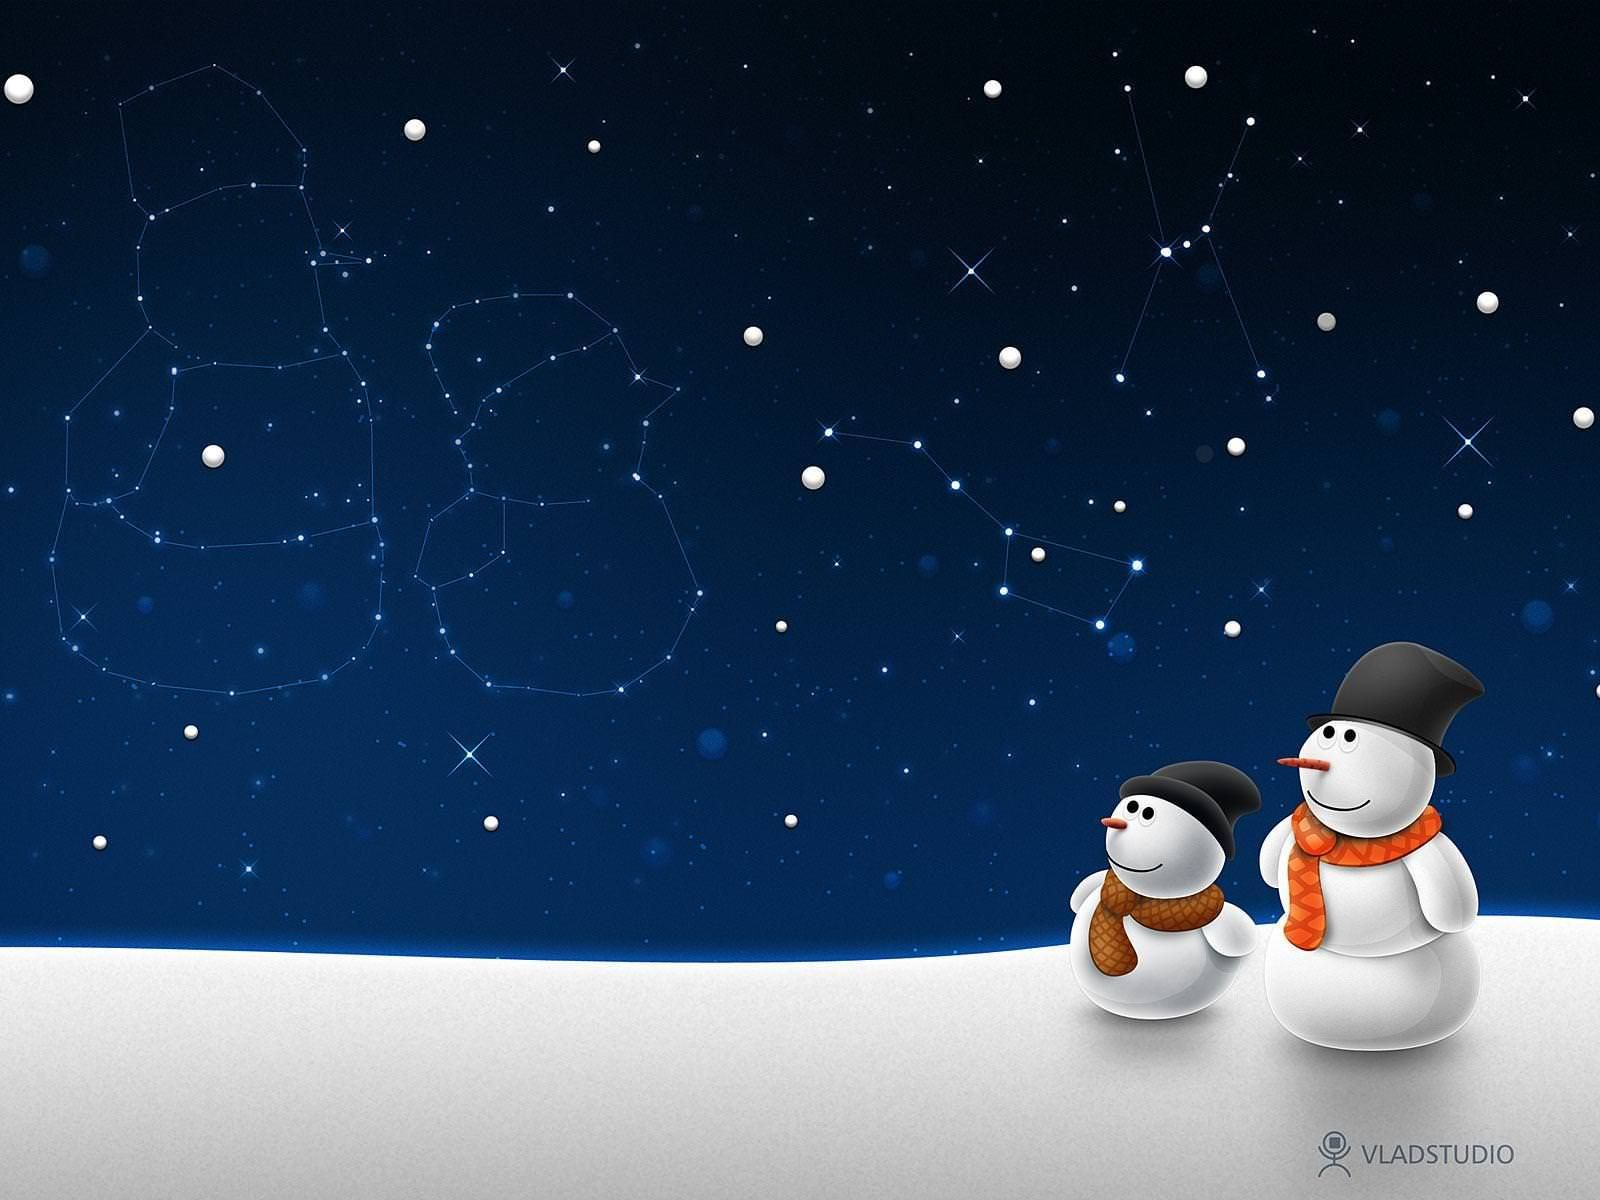 216 2162129 snowman wallpapers free animated christmas background for powerpoint